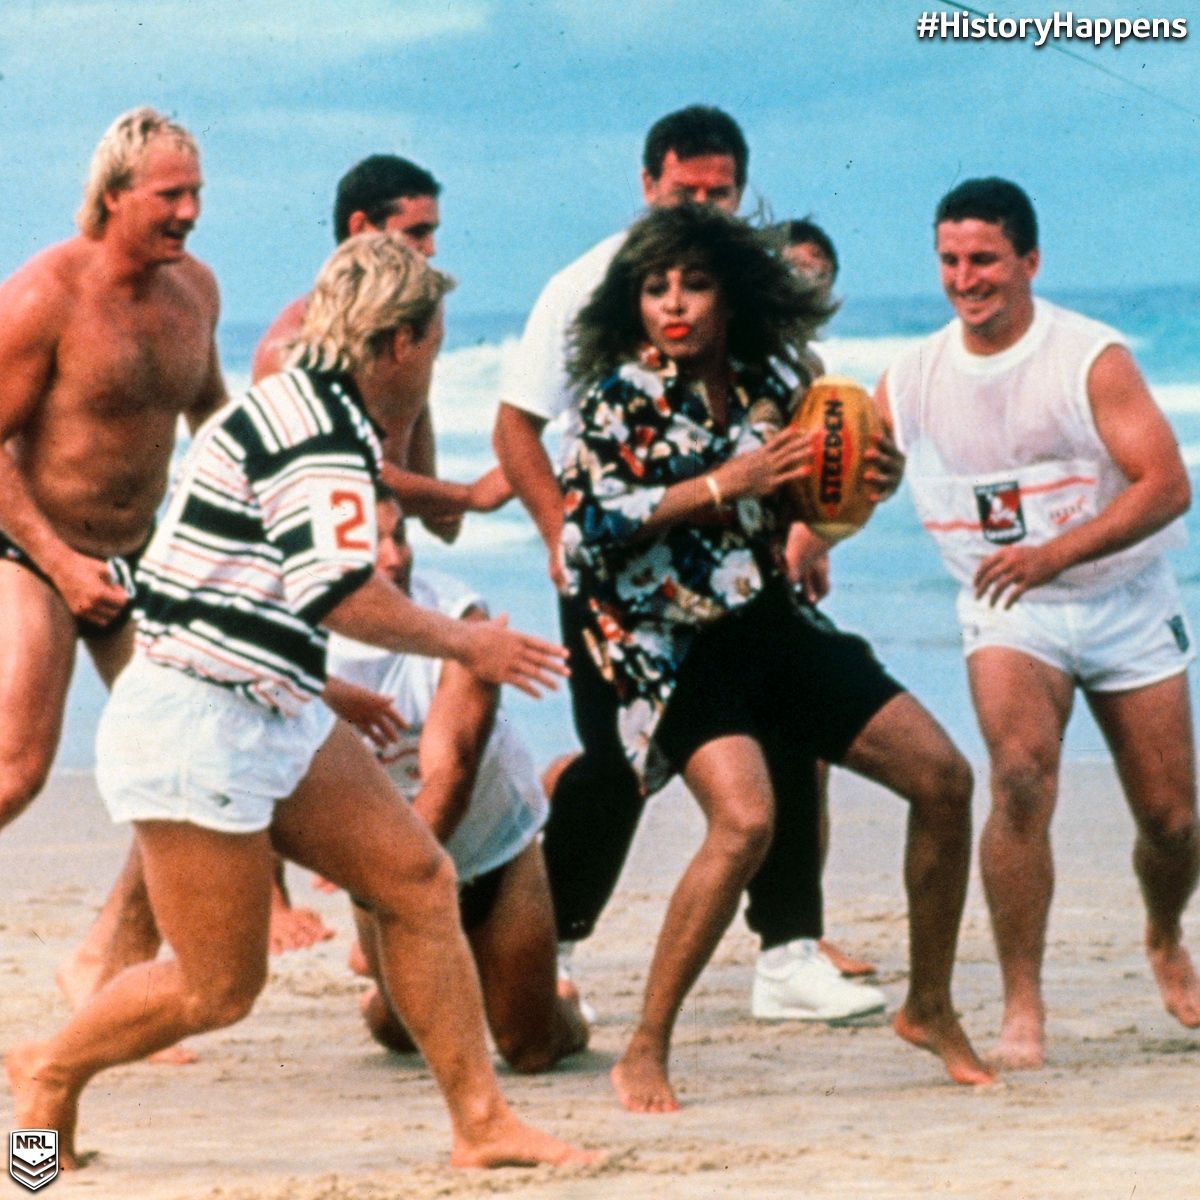 The Day Tina Turner Visited The Gold Coast Seagulls Nrl Where Historyhappens Rugby League Nrl League